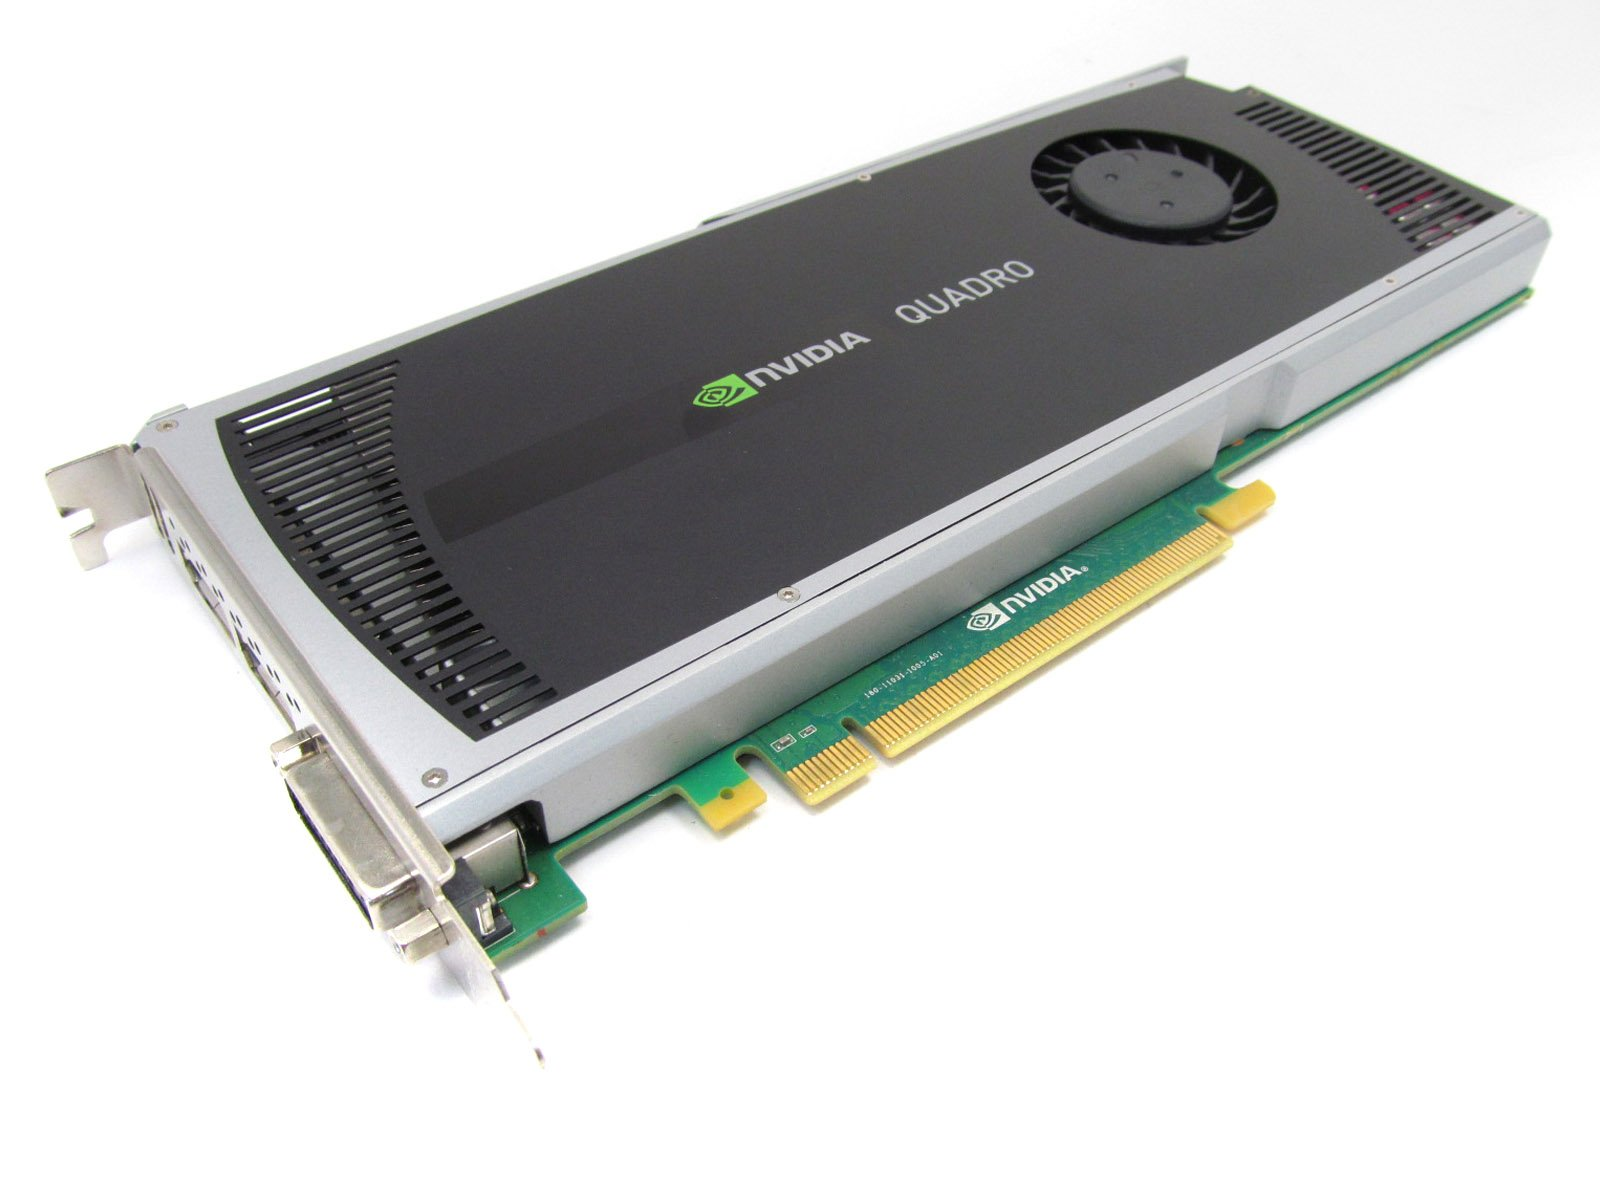 HP 707253-001 NVIDIA Quadro 4000 PCIe 2GB GDDR5 graphics memory - With 1 Dual Link DVI-I and 2 DisplayPort ports - Maximum display resolution 2, 560 x 1, 600 pixels at 60Hz